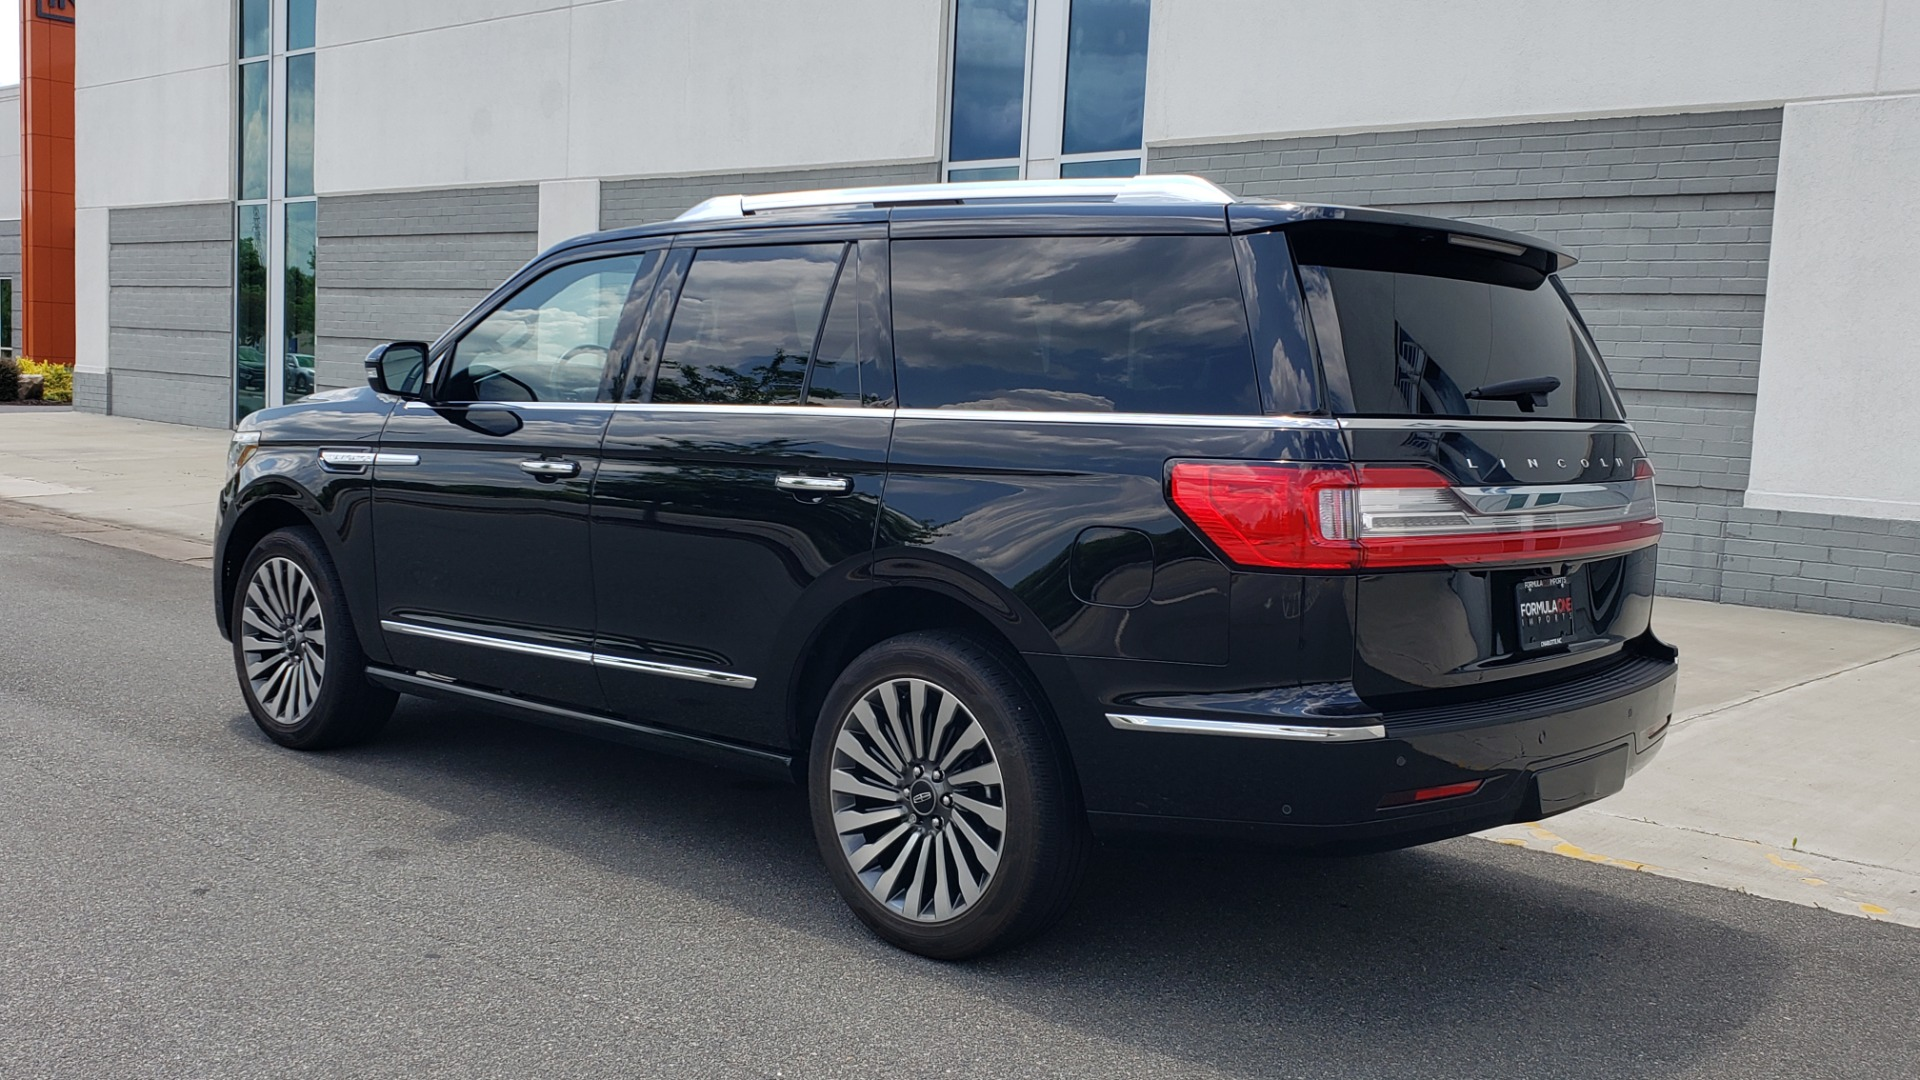 Used 2019 Lincoln NAVIGATOR RESERVE 4X4 / NAV / PANO-ROOF / REVEL ULTIMA AUDIO / 3-ROW / REARVIEW for sale $74,795 at Formula Imports in Charlotte NC 28227 6